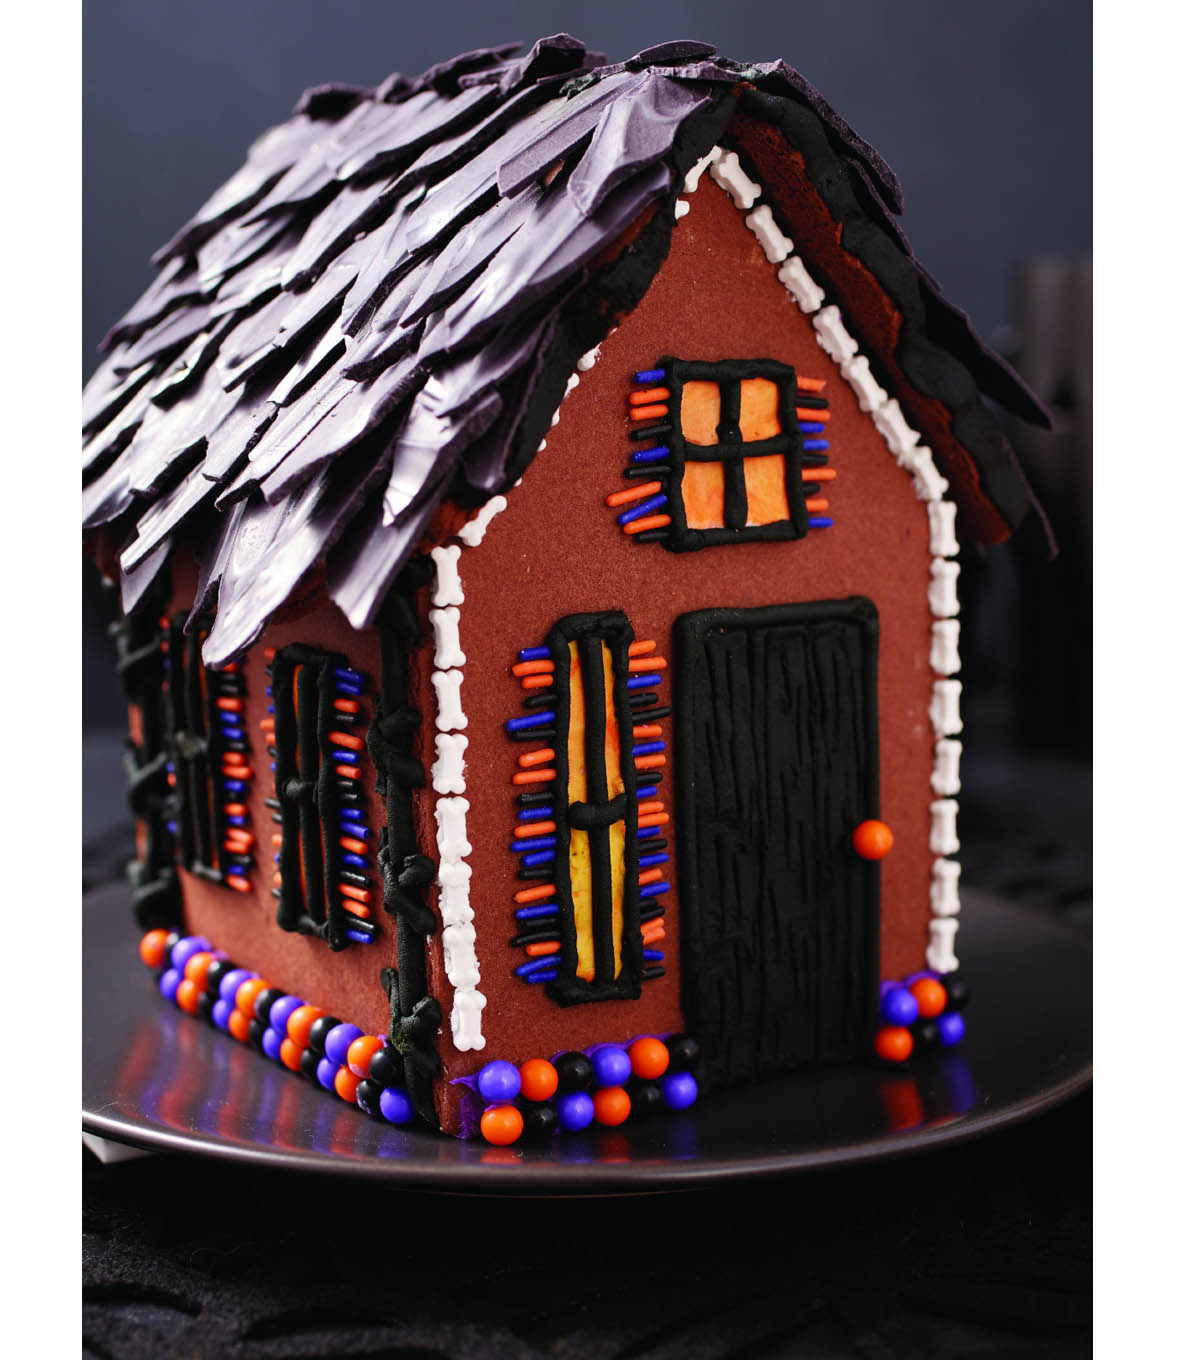 Halloween Treats - Halloween Recipes | JOANN on haunted house moon, simple spooky house, inflatable haunted house, the scariest most haunted house, haunted irish houses, haunted houses in alabama, haunted houses in texas, haunted turkey house, the scarehouse haunted house, haunted gingerbread tree, fun spot orlando haunted house, ghostly manor haunted house, haunted house blank template, haunted winter house, animated haunted house, haunted victorian houses, raymond hill mortuary haunted house, cartoon haunted house, haunted cookie house, haunted family house,